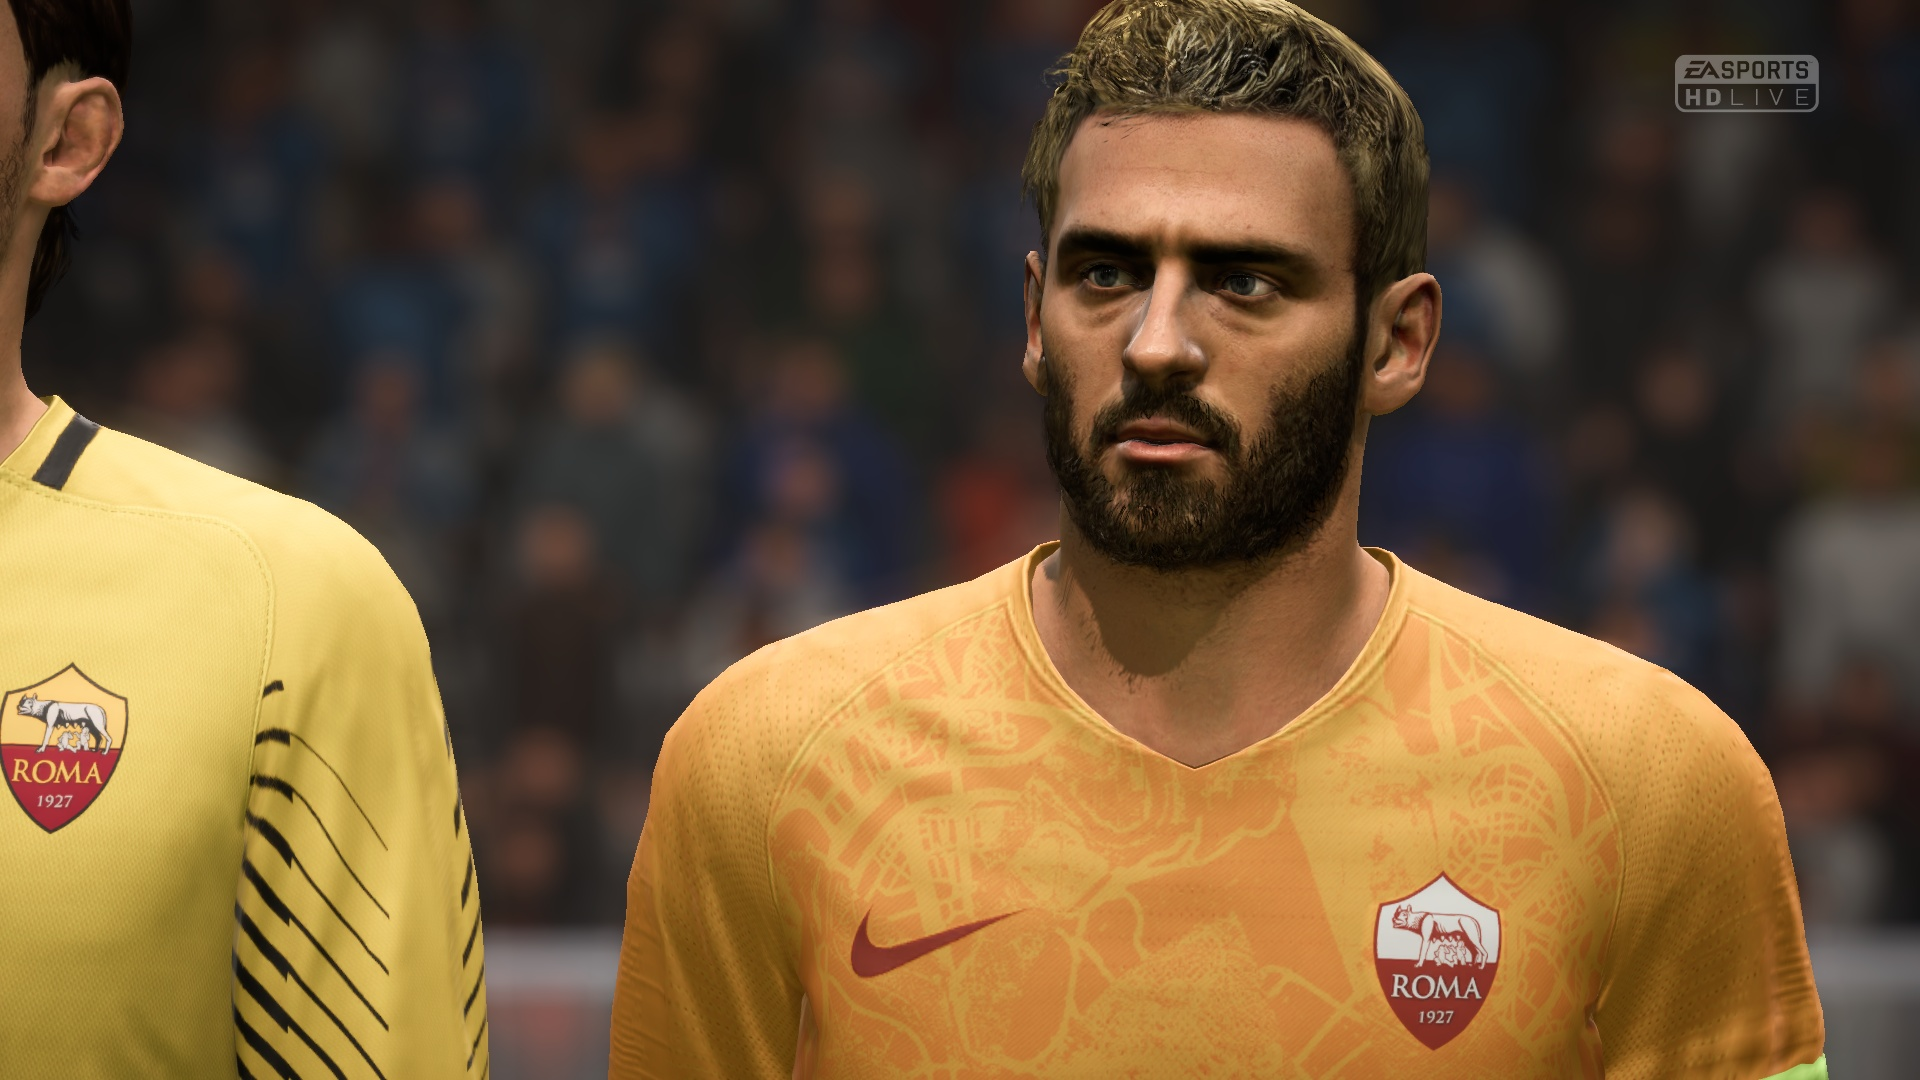 34ad116b20e Complete kits converted from FIFA 19 to FIFA 18 for all Serie A teams. This  download also includes home